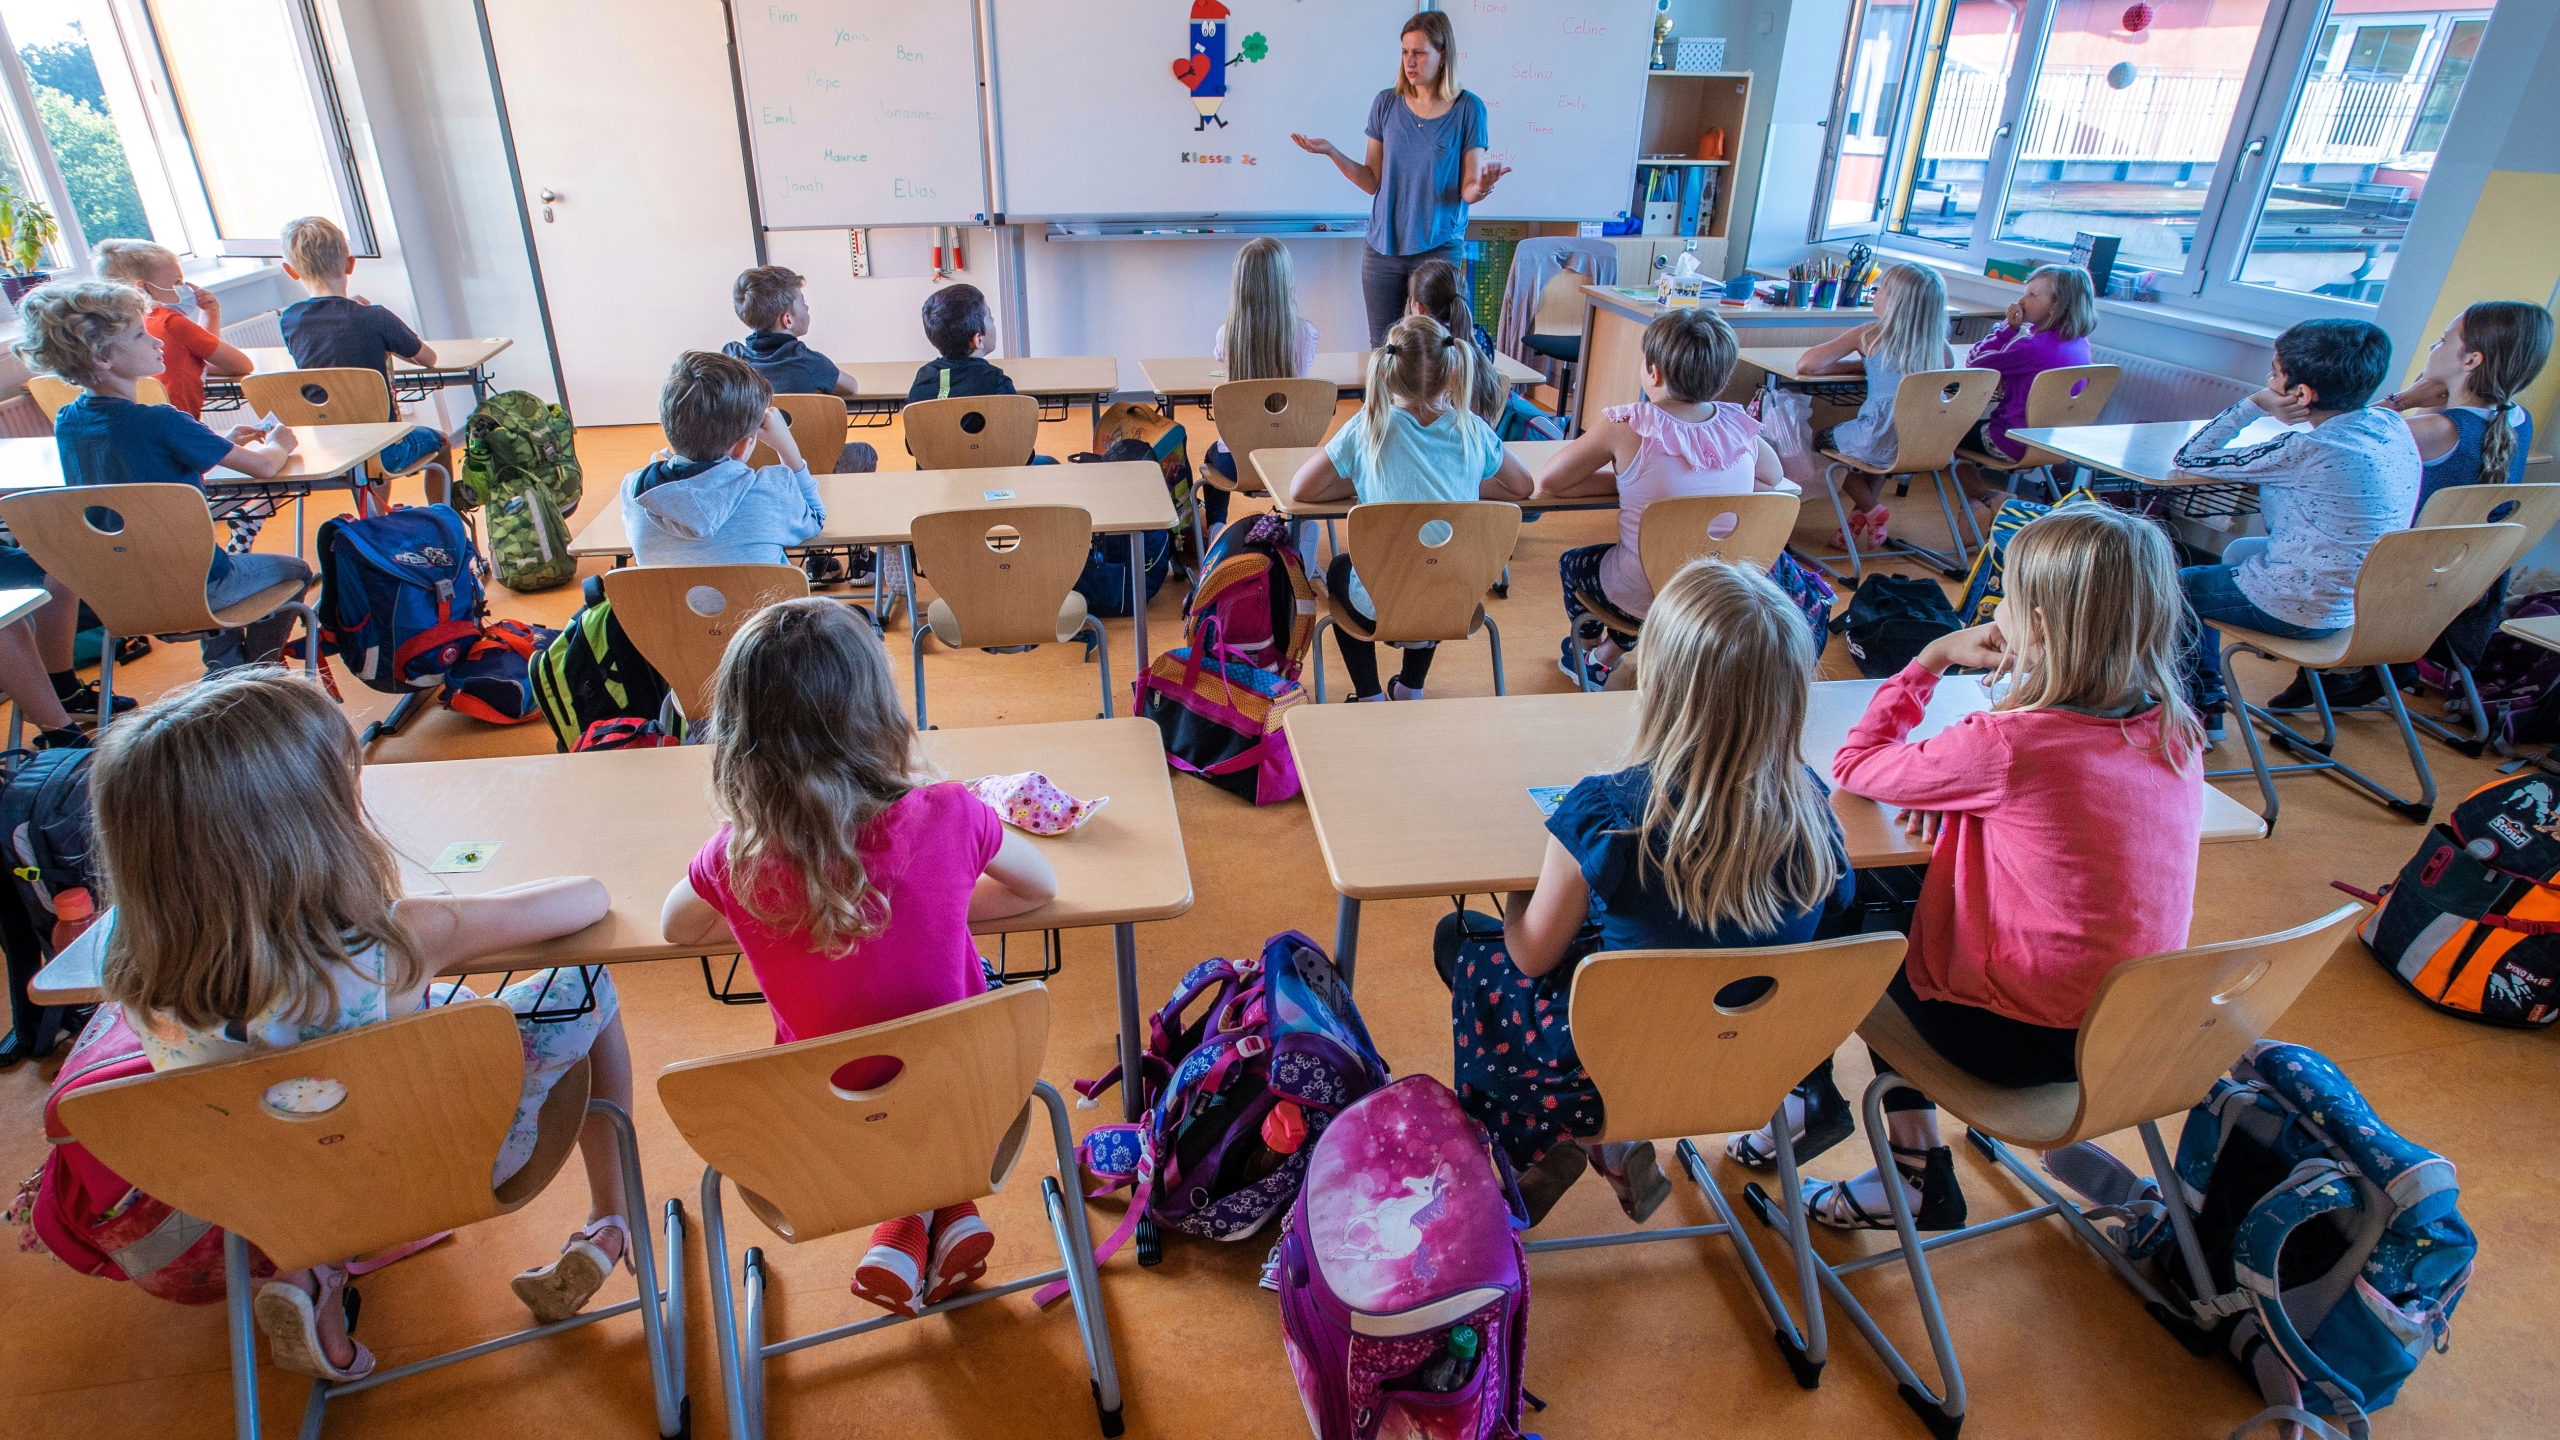 Europe is going back to school despite recent virus surge | WWTI -  InformNNY.com